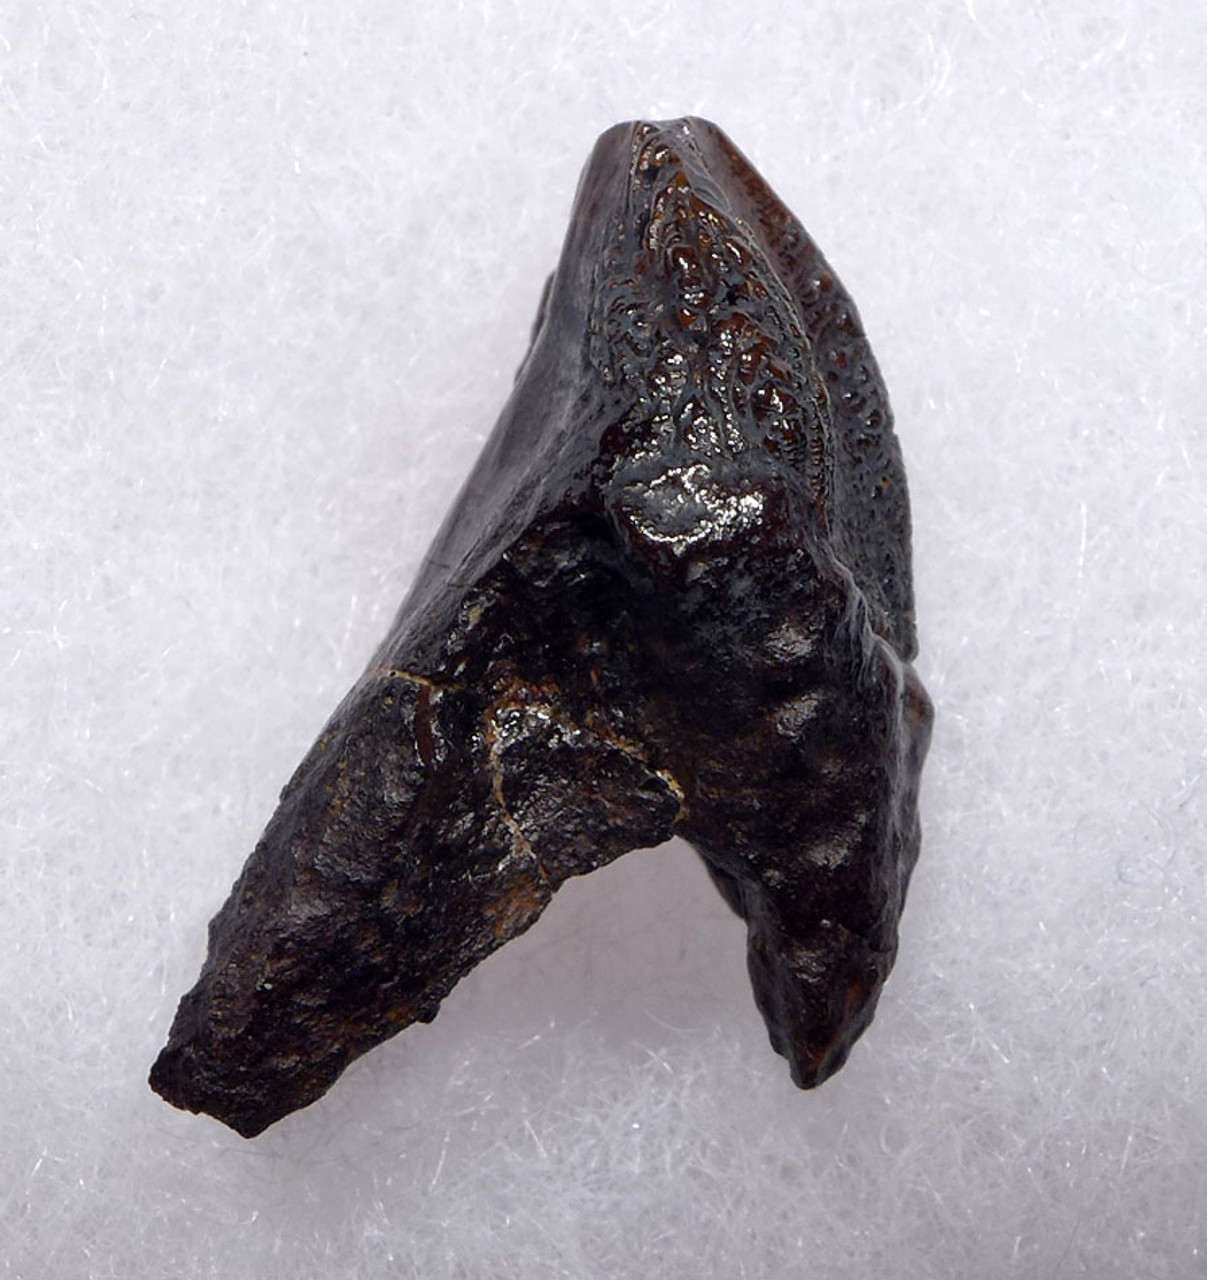 FINEST LARGE TRICERATOPS DINOSAUR TOOTH WITH UNWORN CROWN AND ROOT  *DT19-048